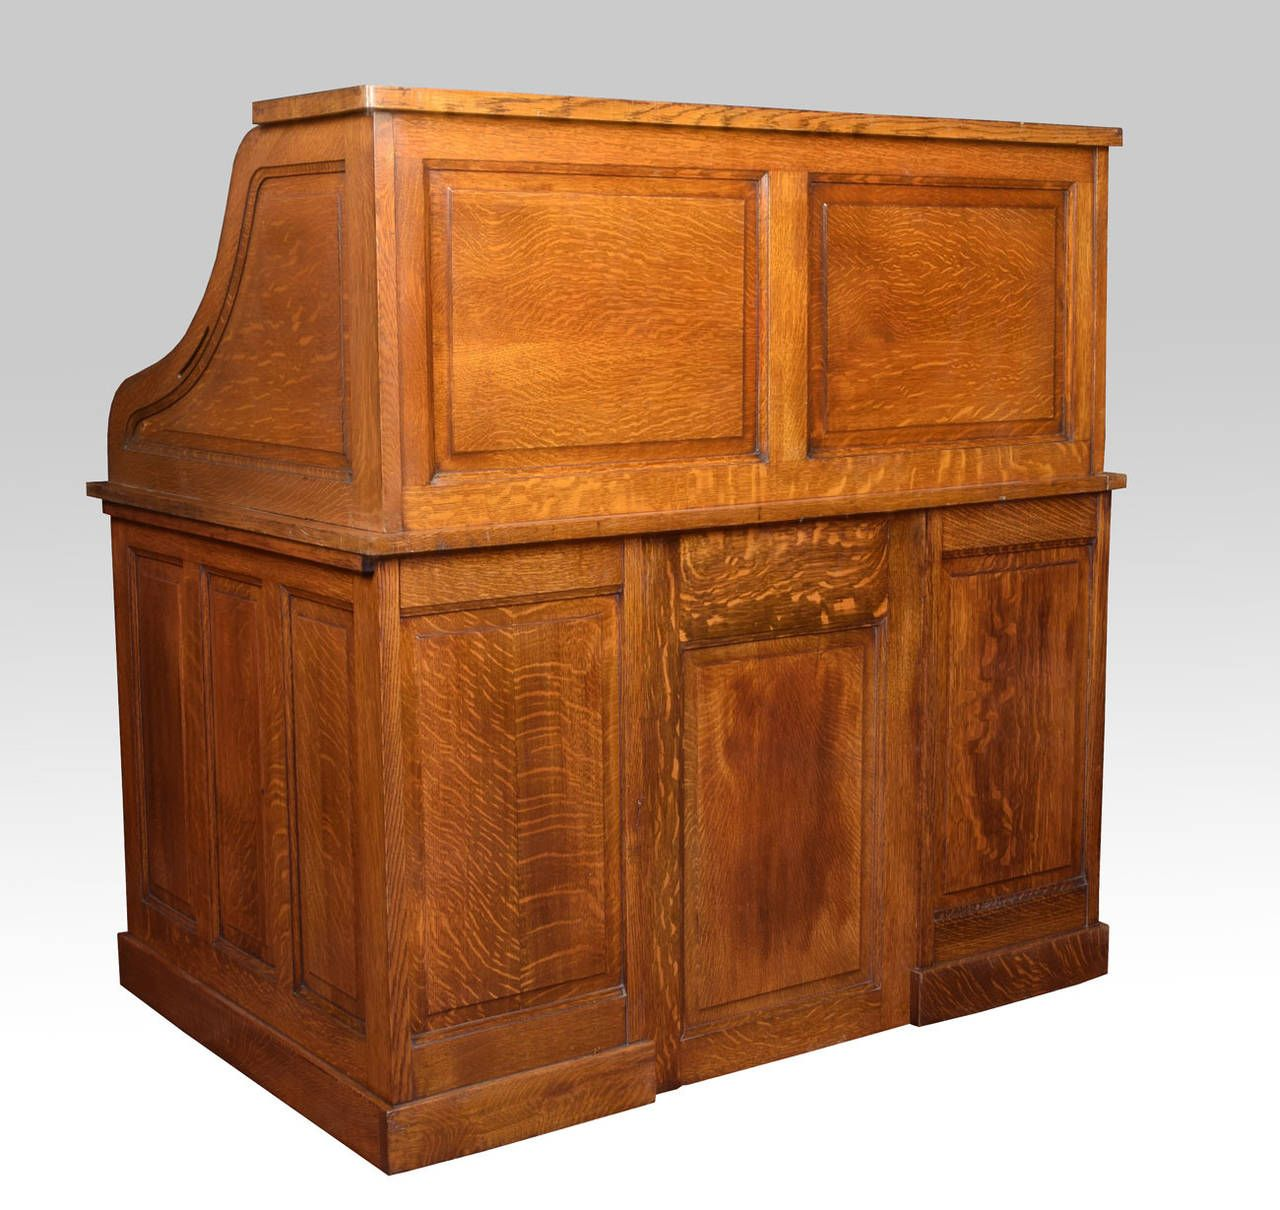 Charming Oak Pedestal Roll Top Desk By Cutler | From A Unique Collection Of Antique  And Modern